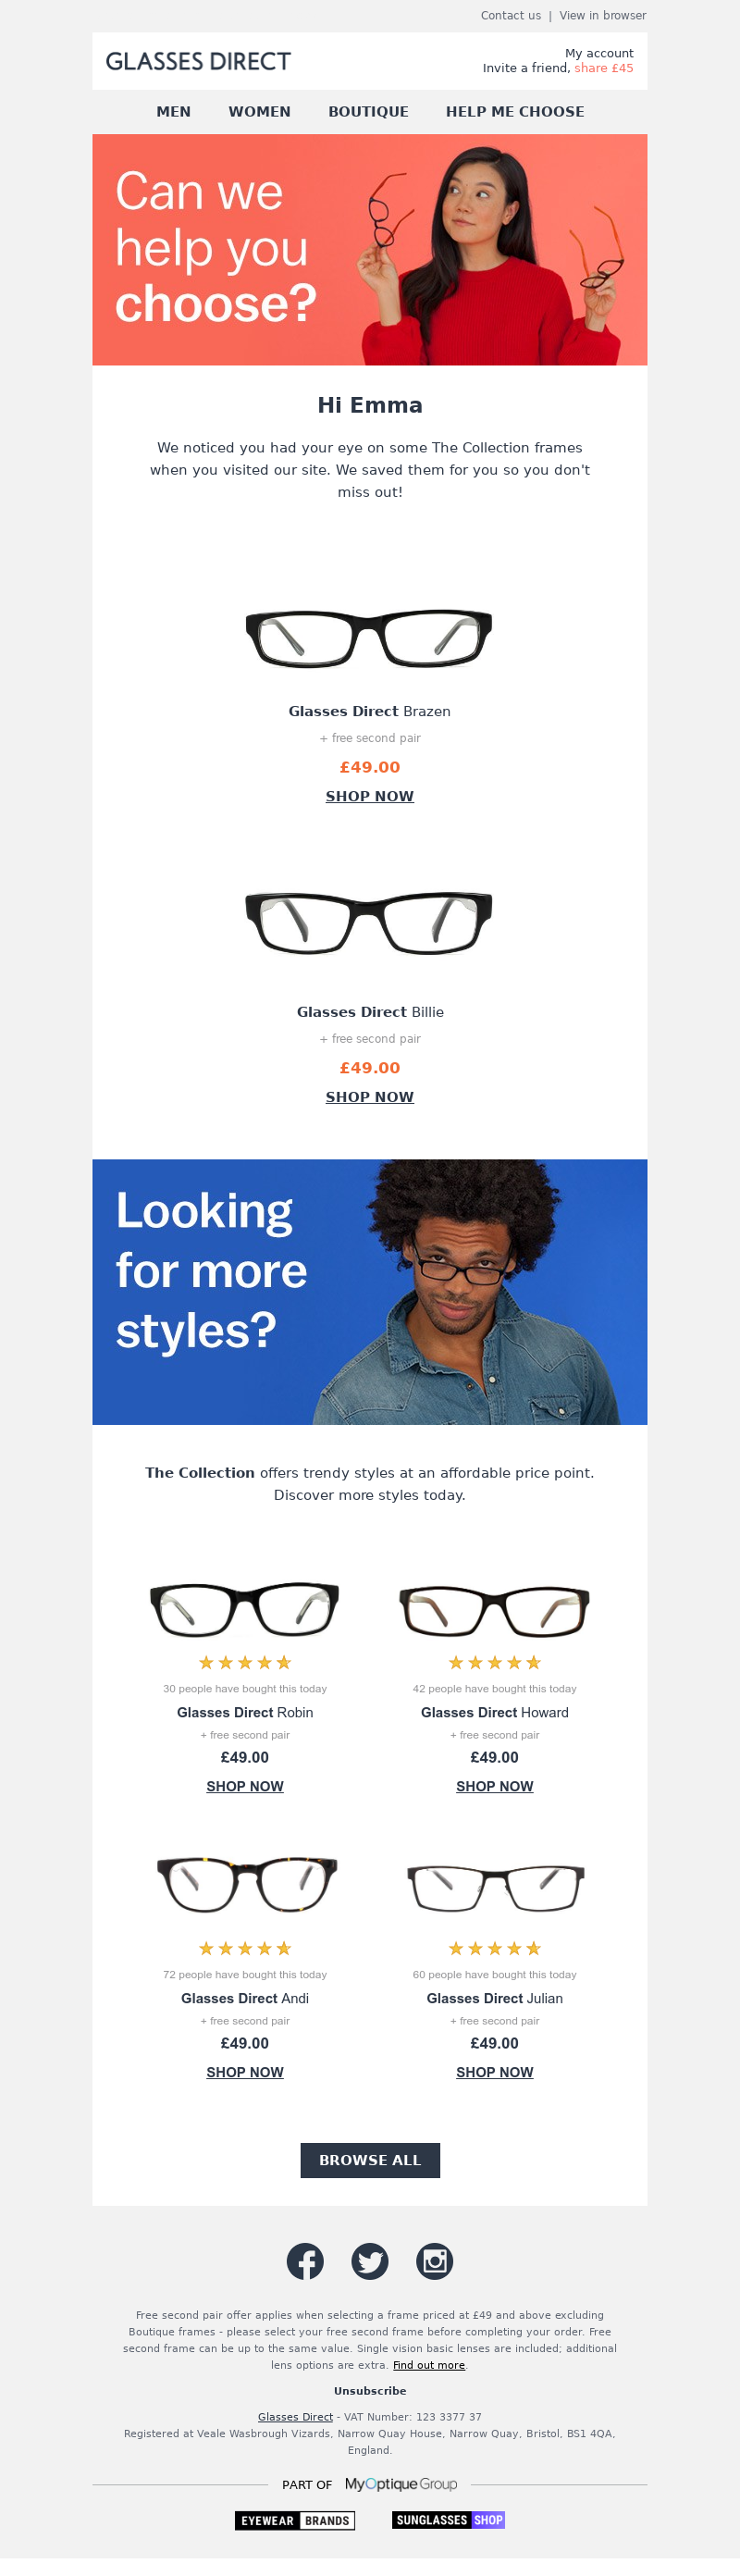 Call us: 01793 746601 | View in browser Glasses Direct Hi Emma We noticed y